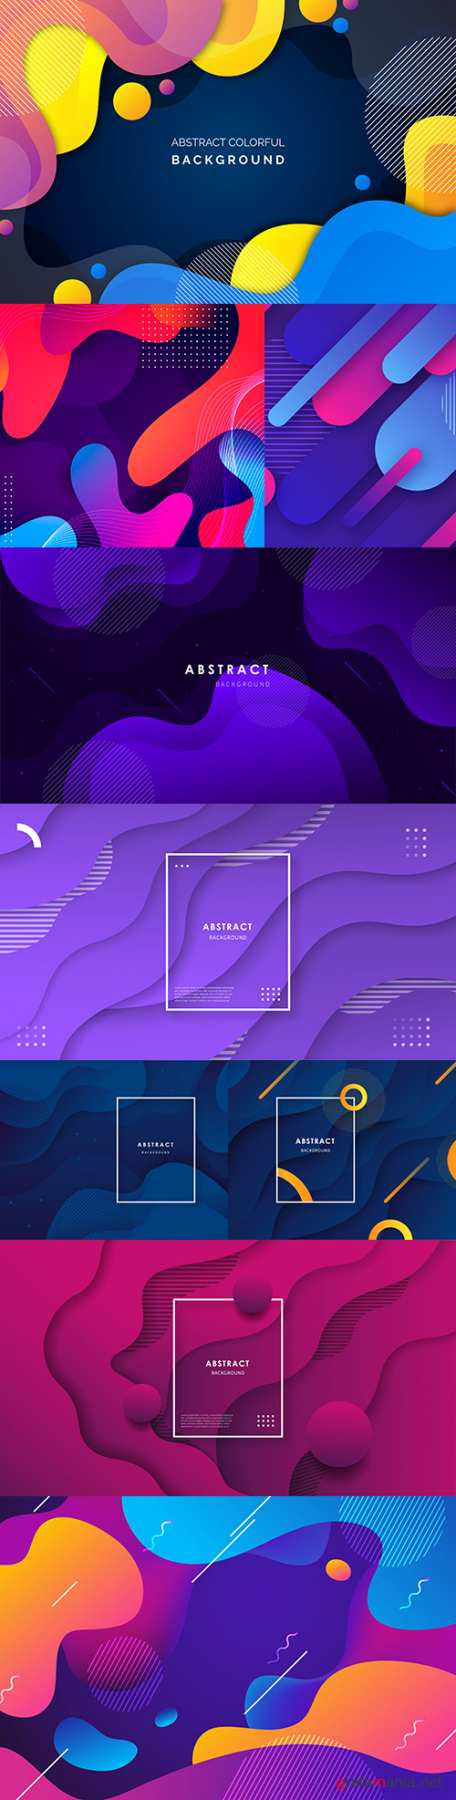 Abstract gradient wave background with colorful shapes